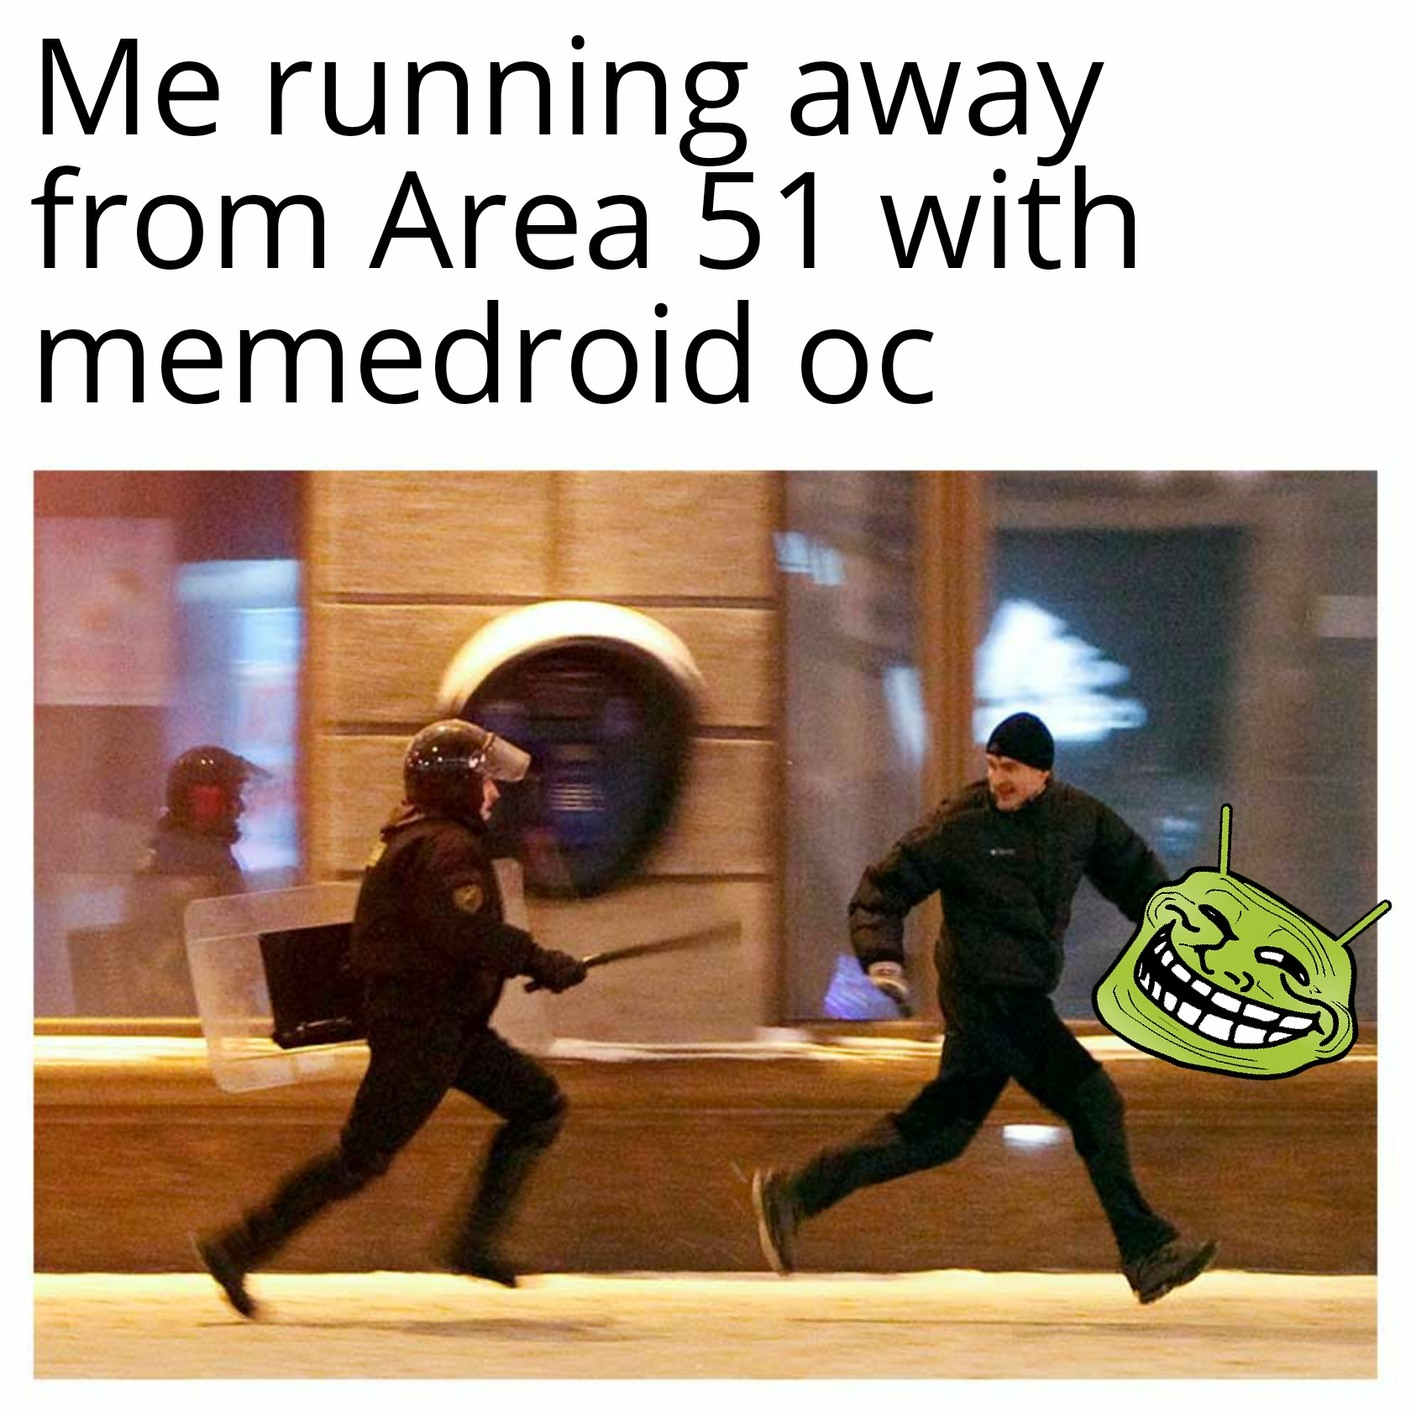 Raid area 51 for memedroid oc